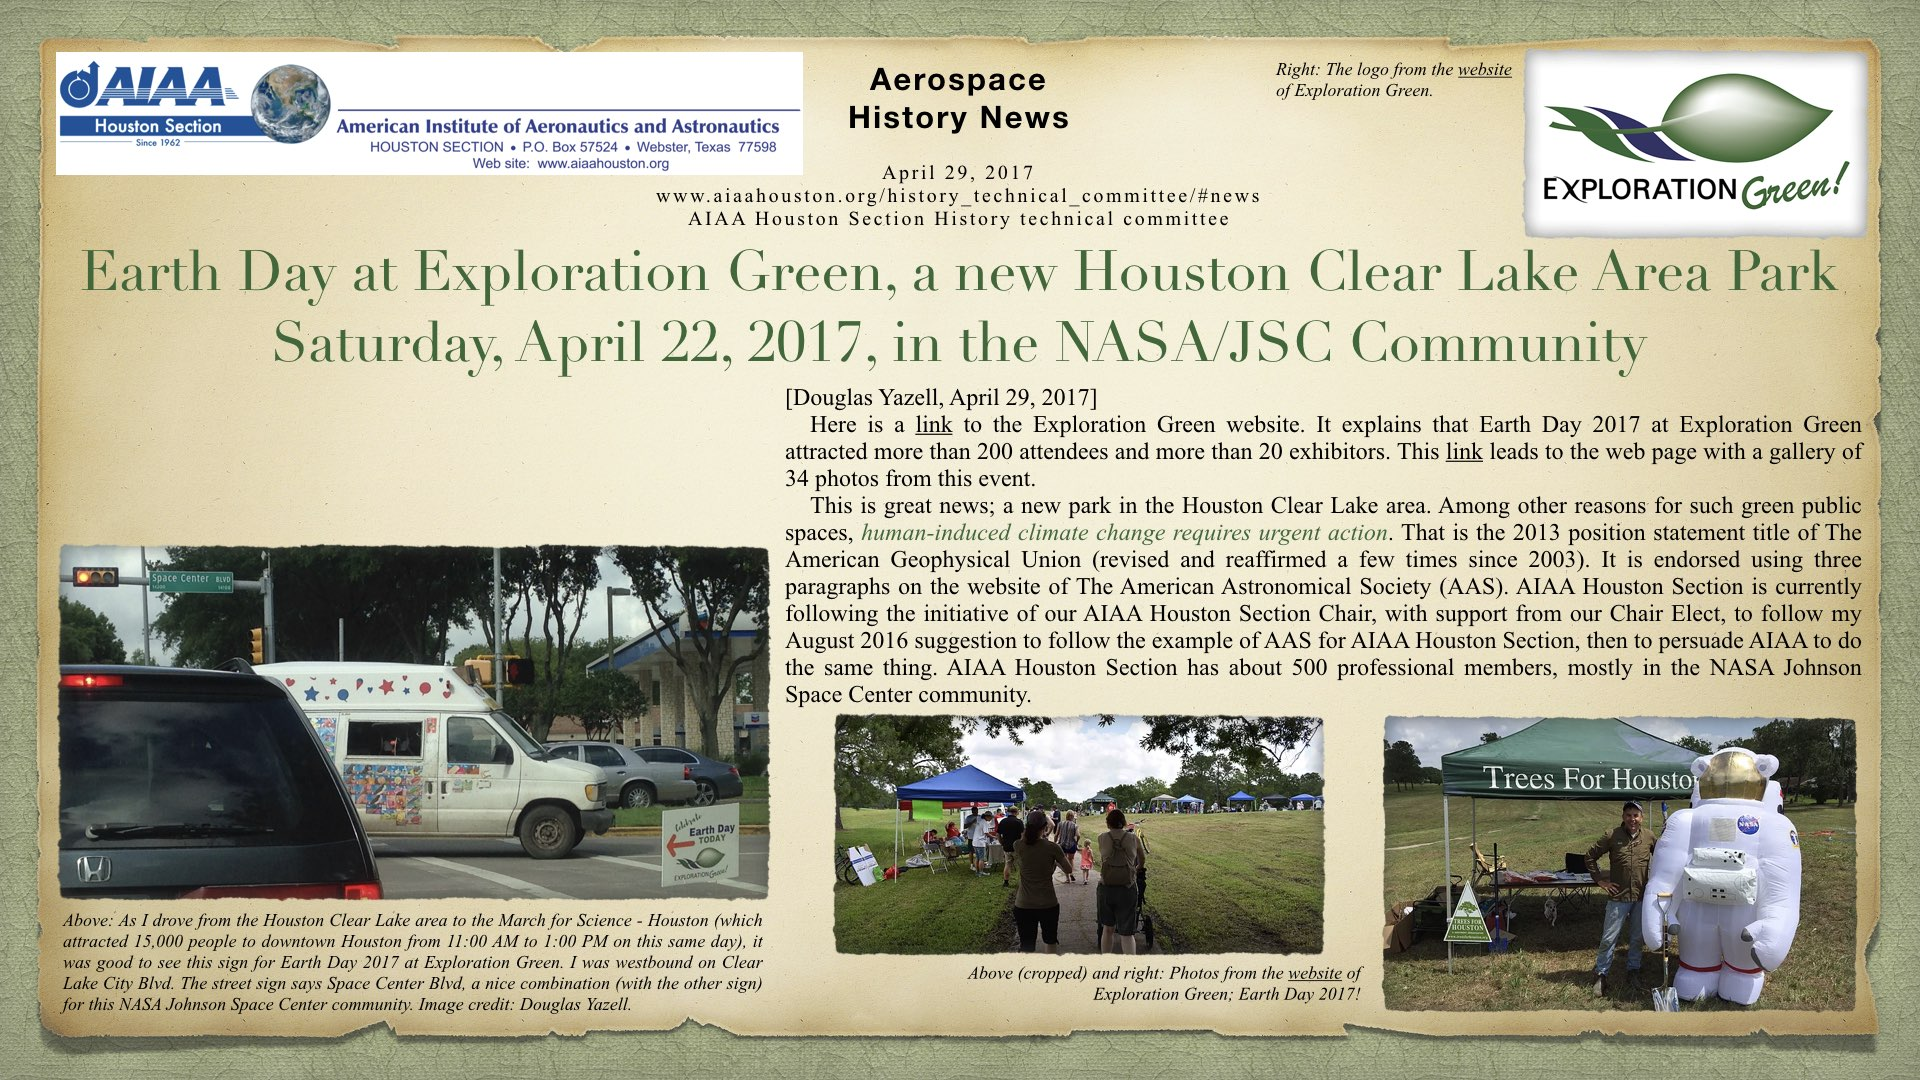 Above: Earth Day at Exploration Green, a new Houston Clear Lake Area Park, Saturday, April 22, 2017, in the NASA/JSC Community. (Click to zoom.)